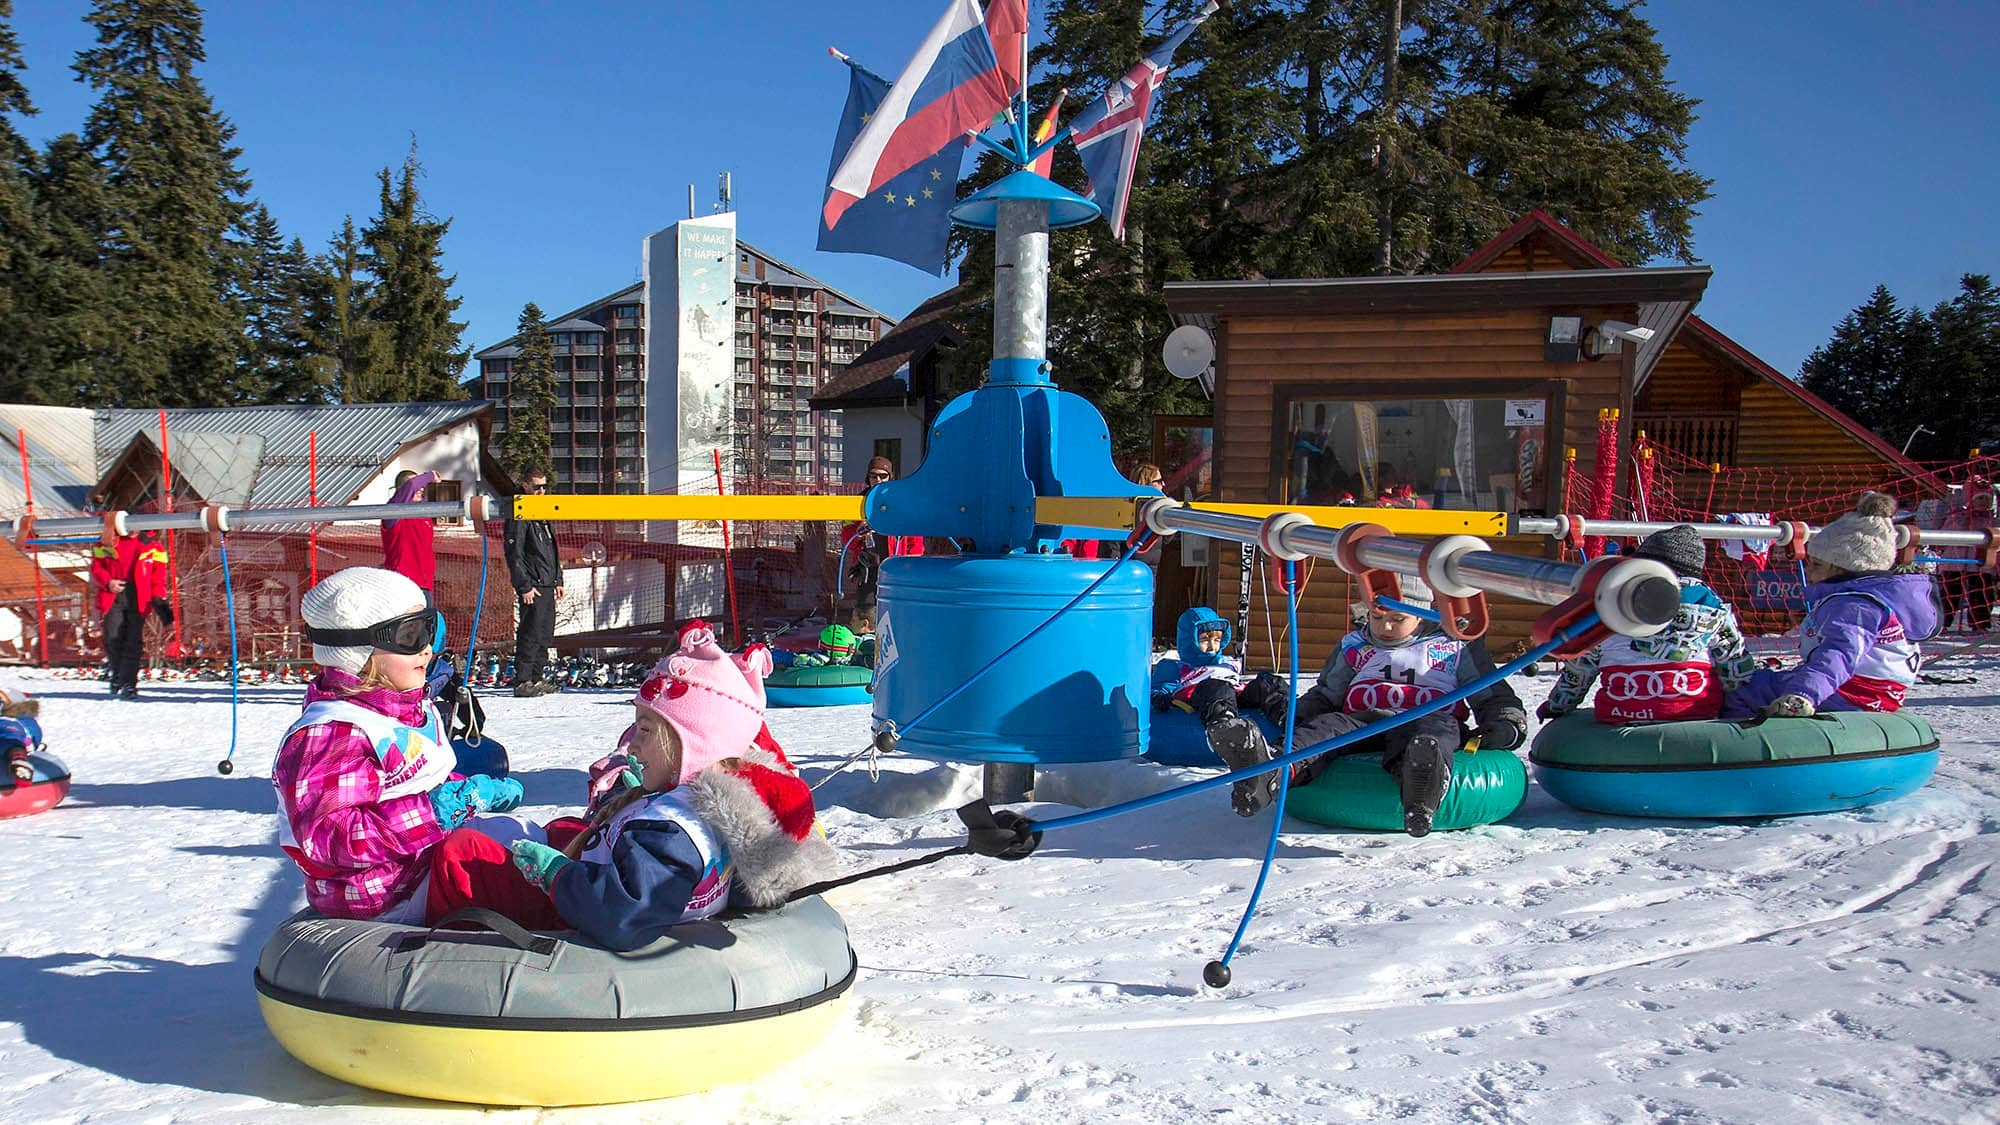 Kids' carousel ride in Borovets